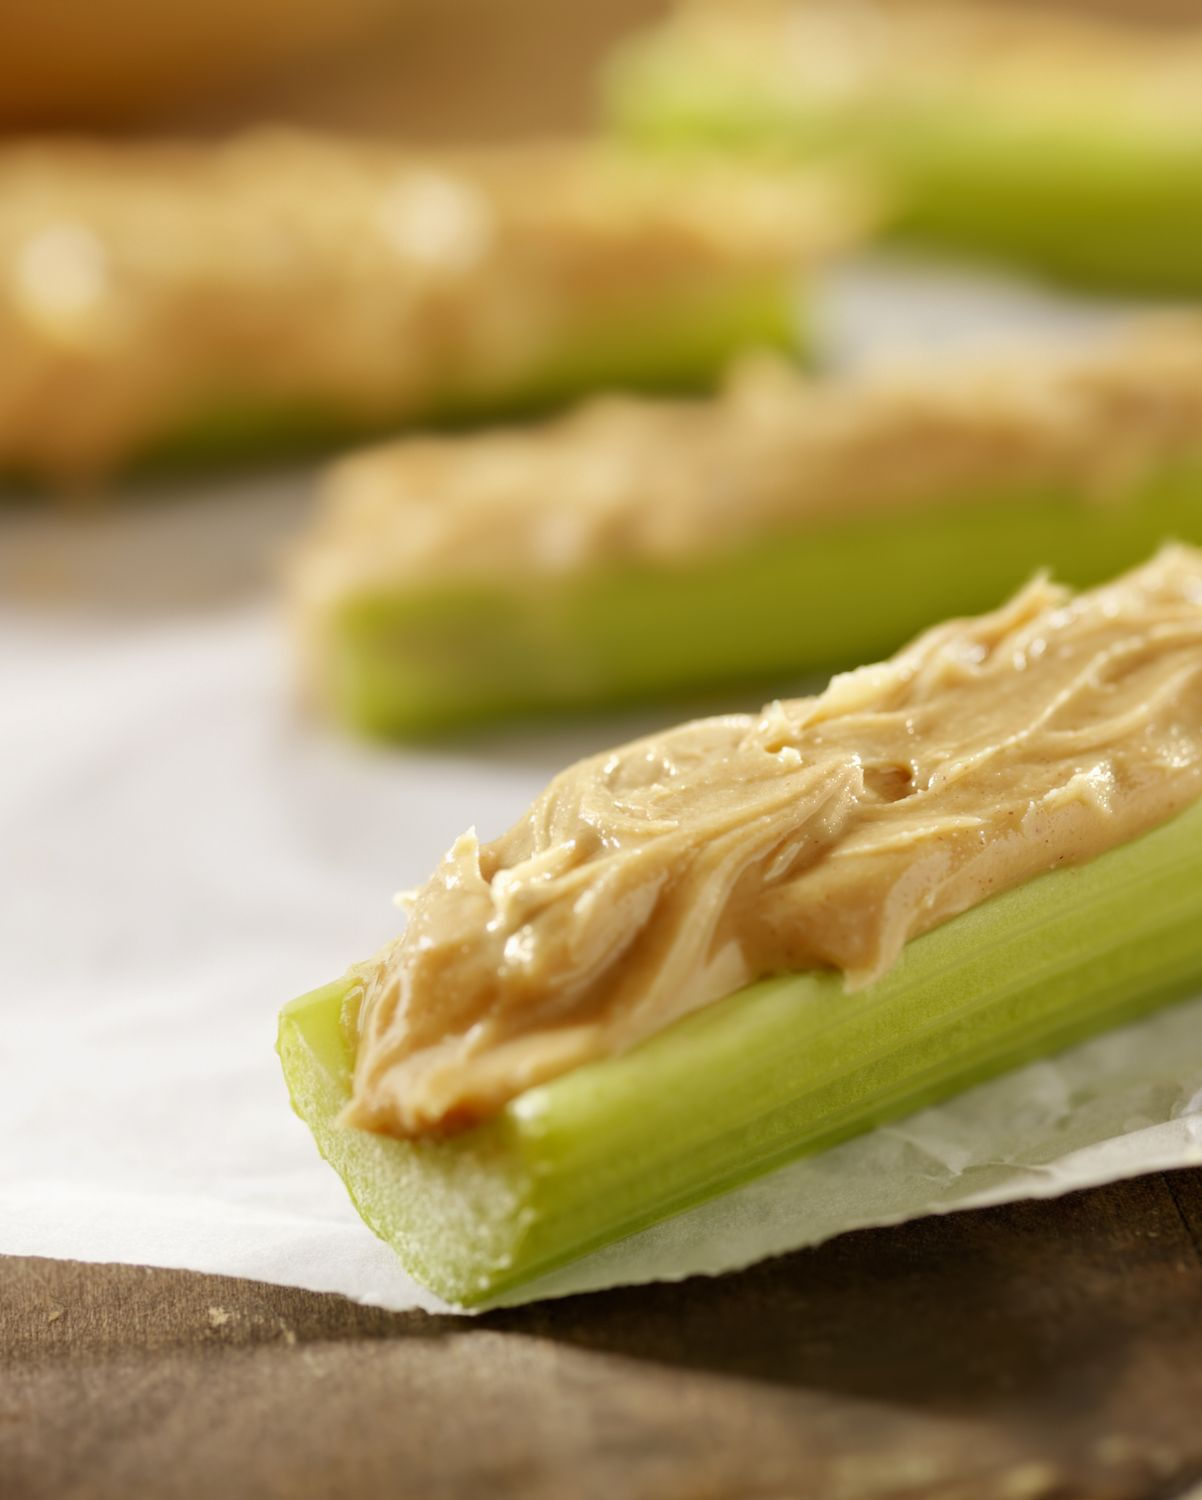 Peanut Butter on Sticks of Celery